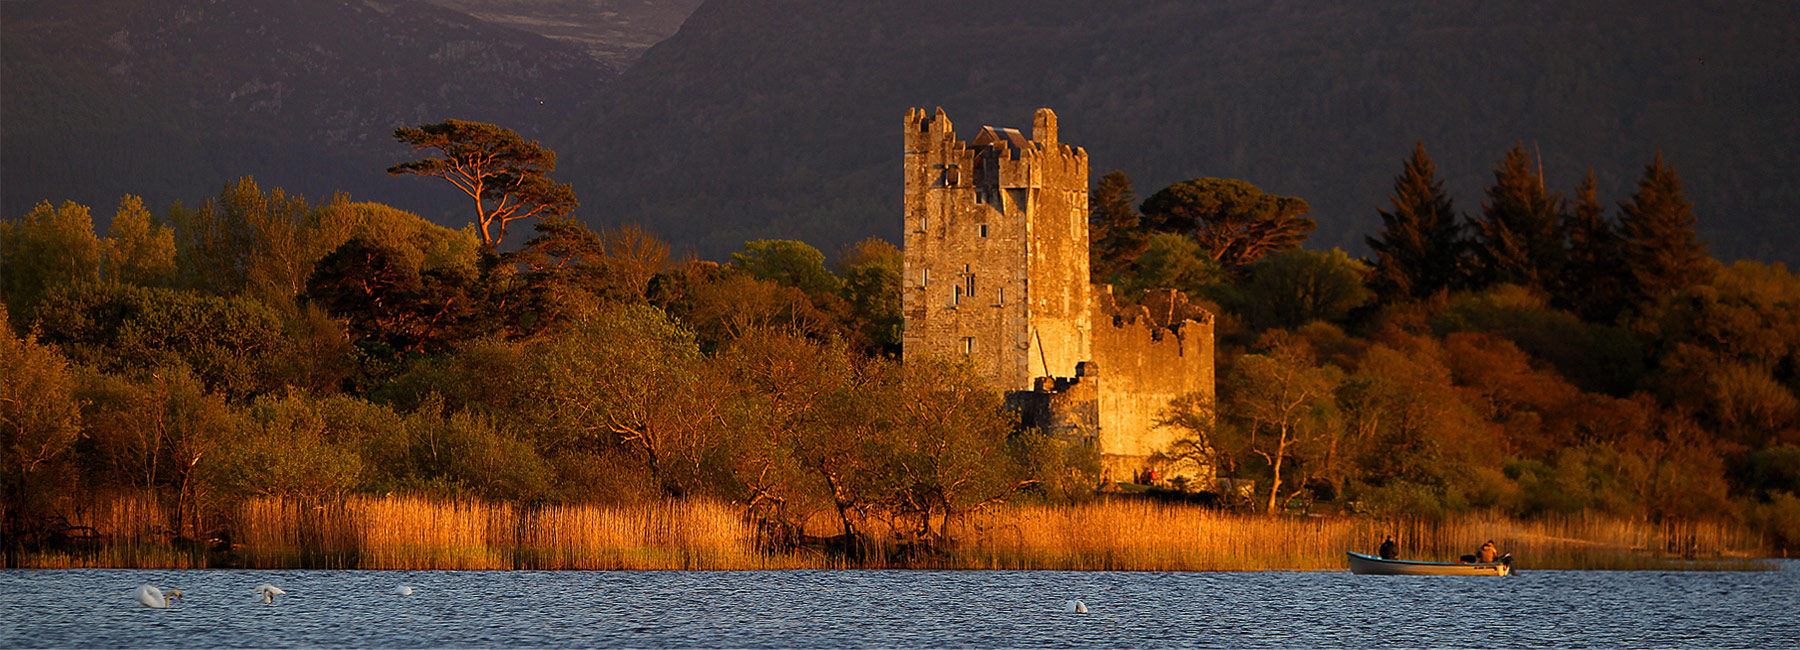 Ross Castle Killarney National Park